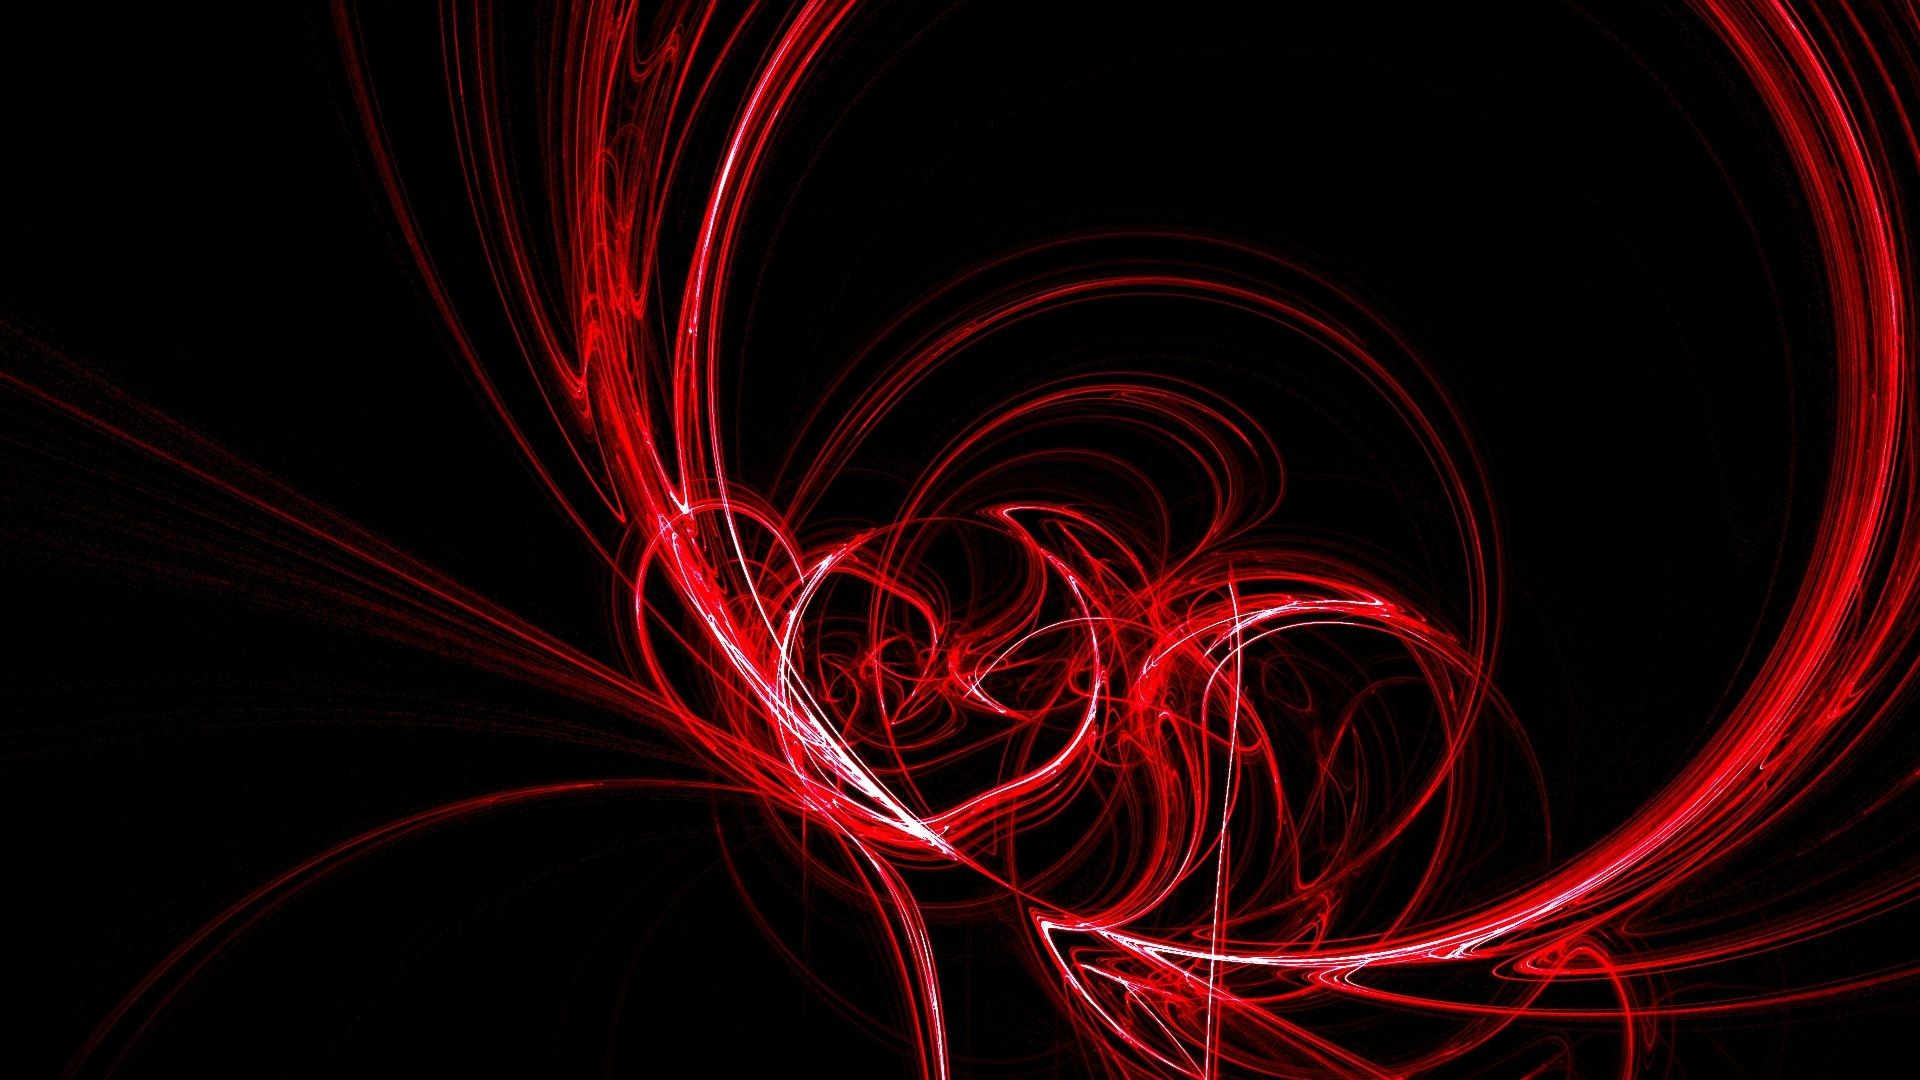 Download Red Abstract Wallpaper 1920 x 1080